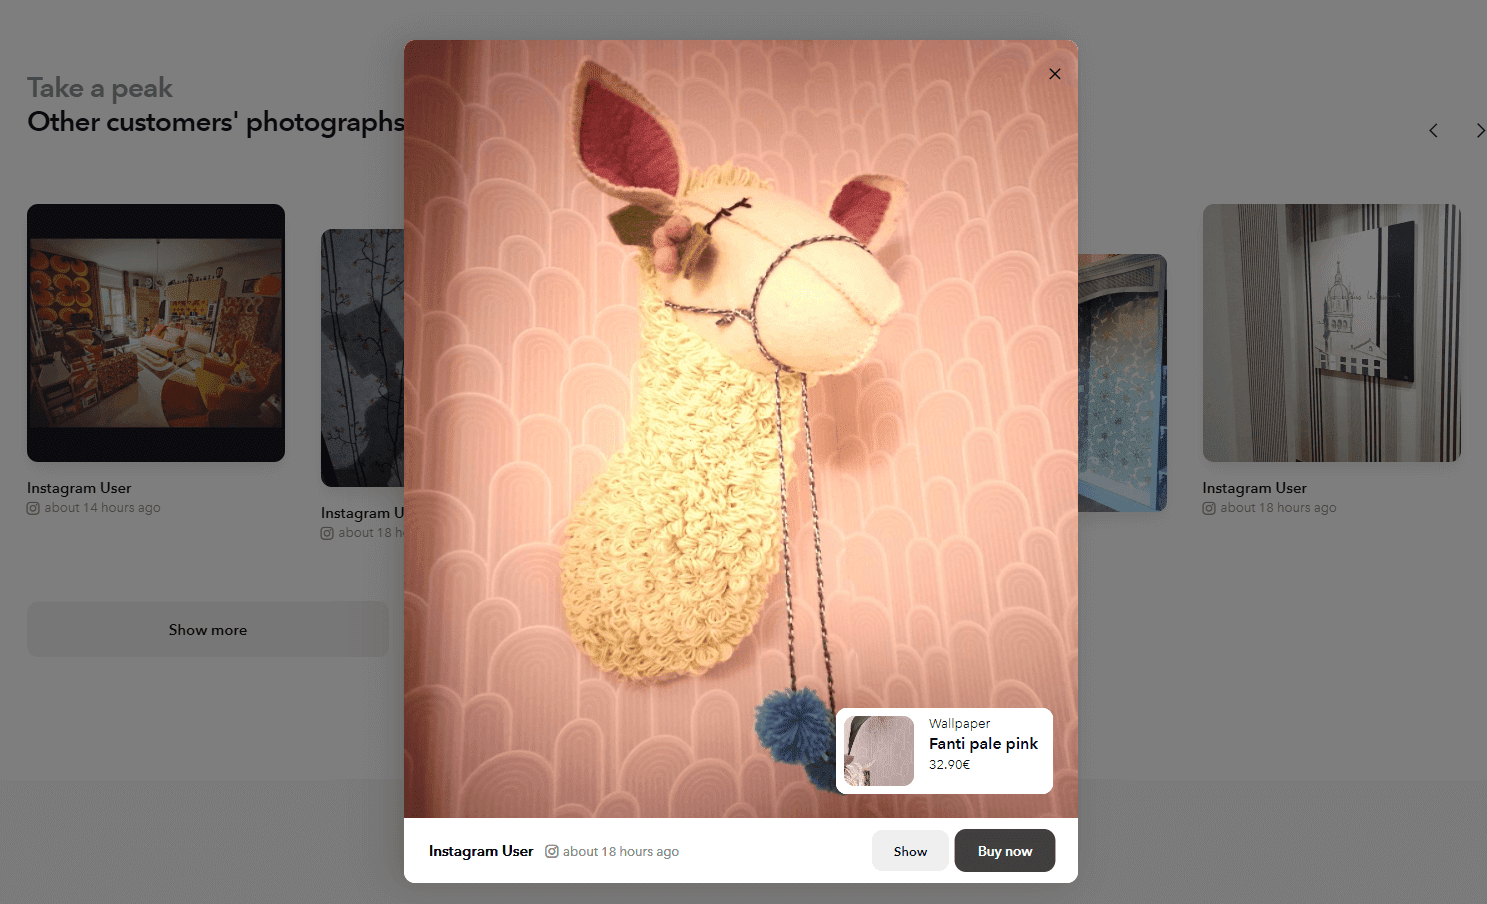 """An example of a shoppable Instagram post with the call-to-action """"buy now"""" on the Wallpaper from the 70s website."""